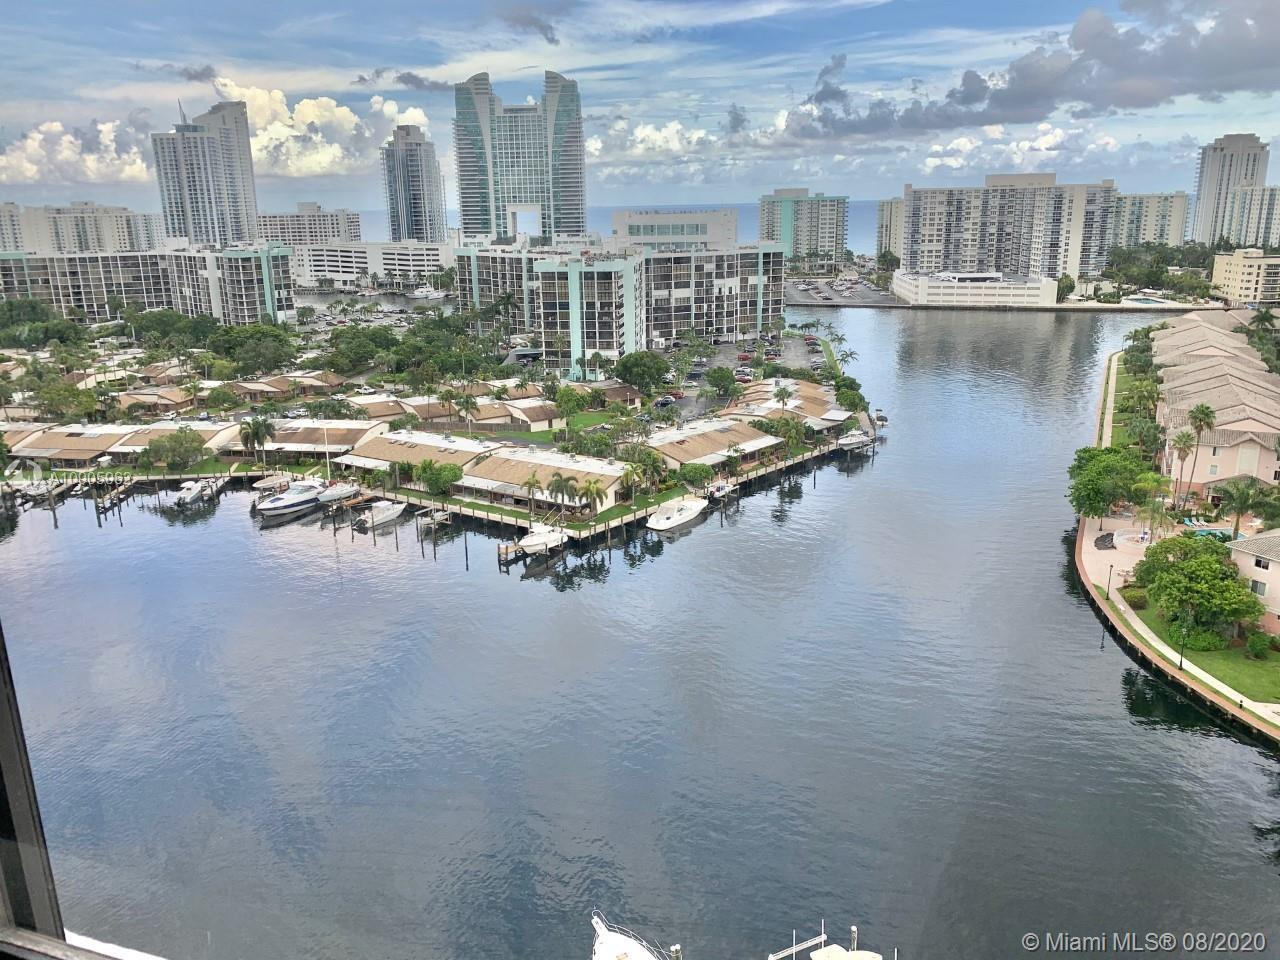 BOATER'S PARADISE! IMAGINE WAKING UP TO THIS VIEW EVERY MORNING! HUGE UNIT IN INTRACOASTAL FRONT BUI